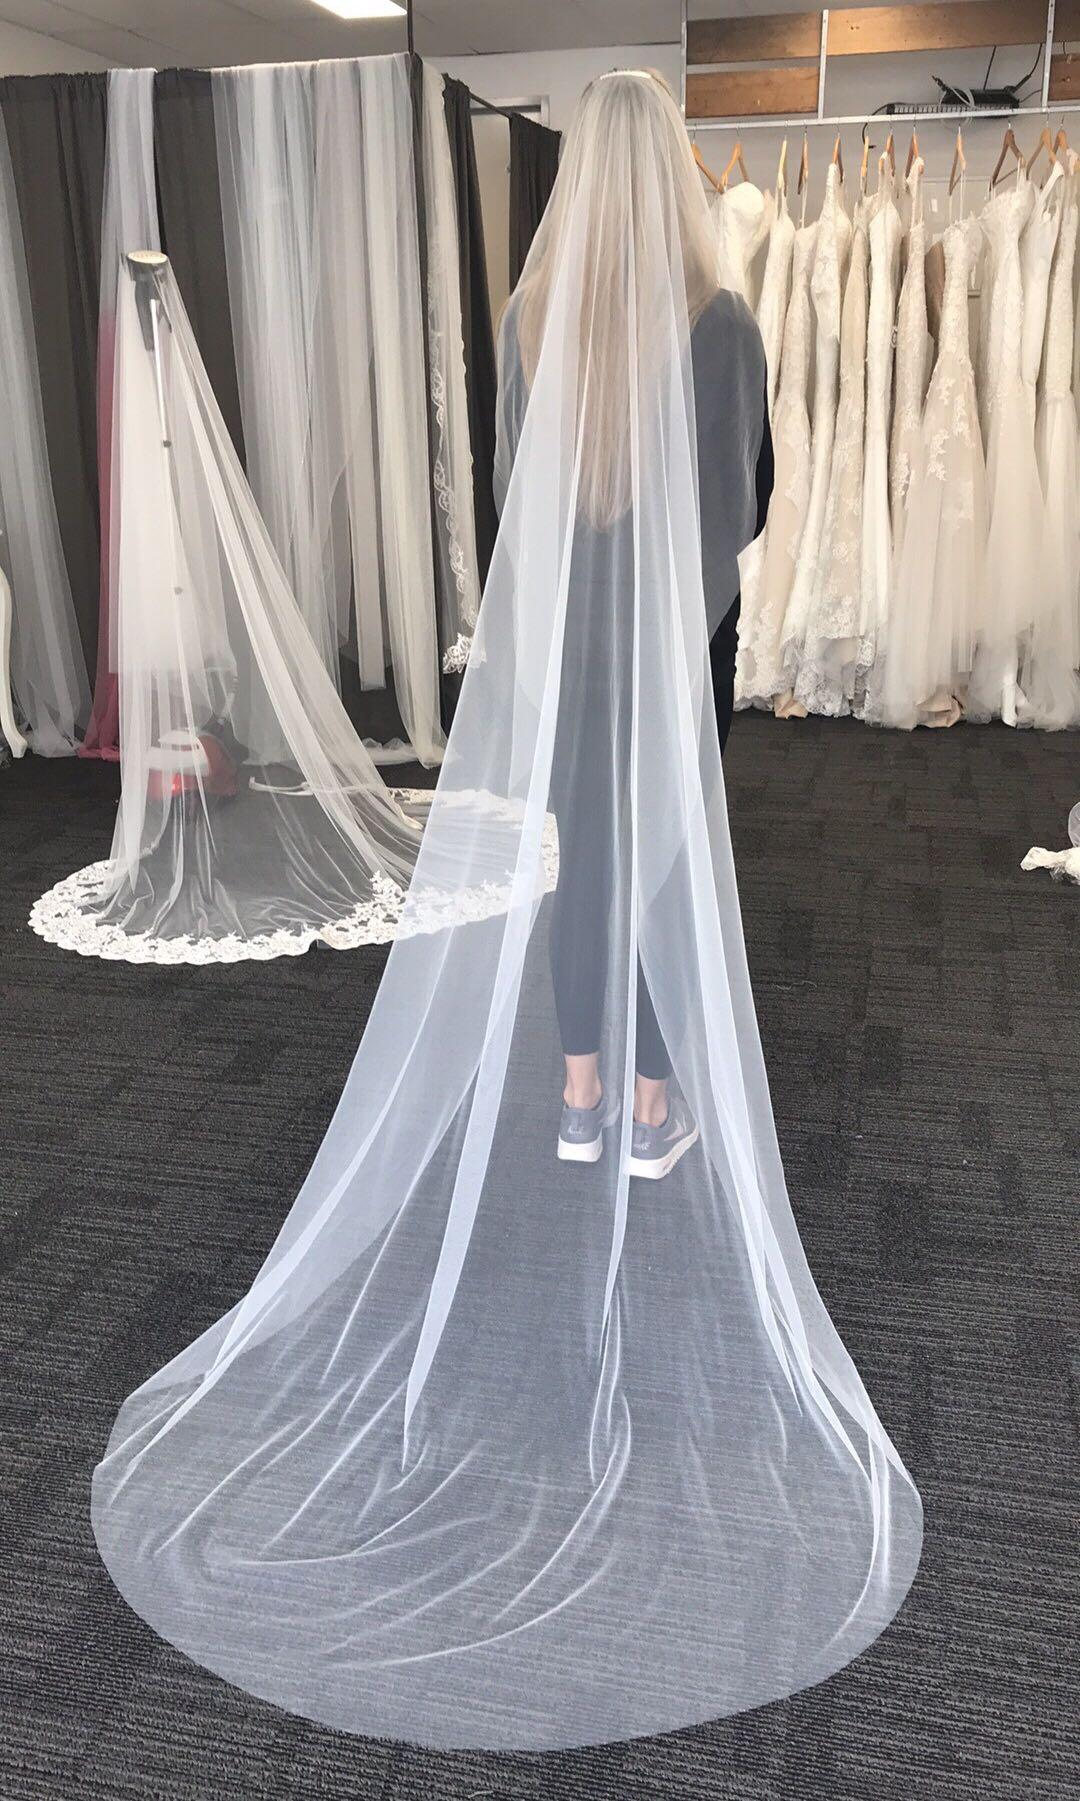 1tier modern wedding veil in cathedral length $100 made with french silk tulle- new